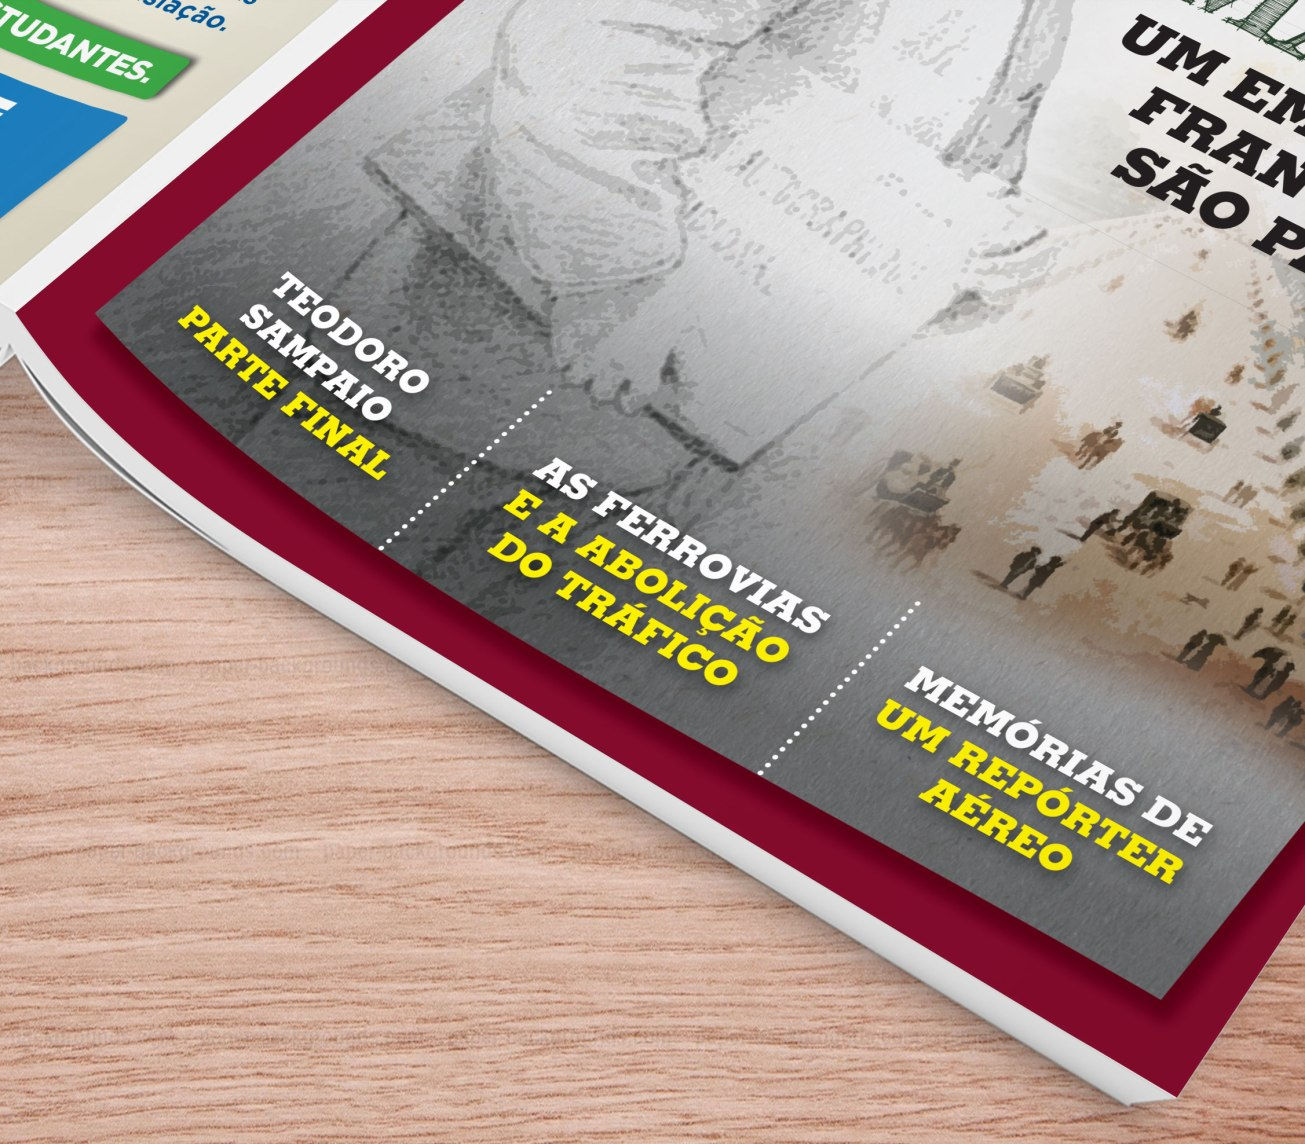 Revista_do_Historiador_01